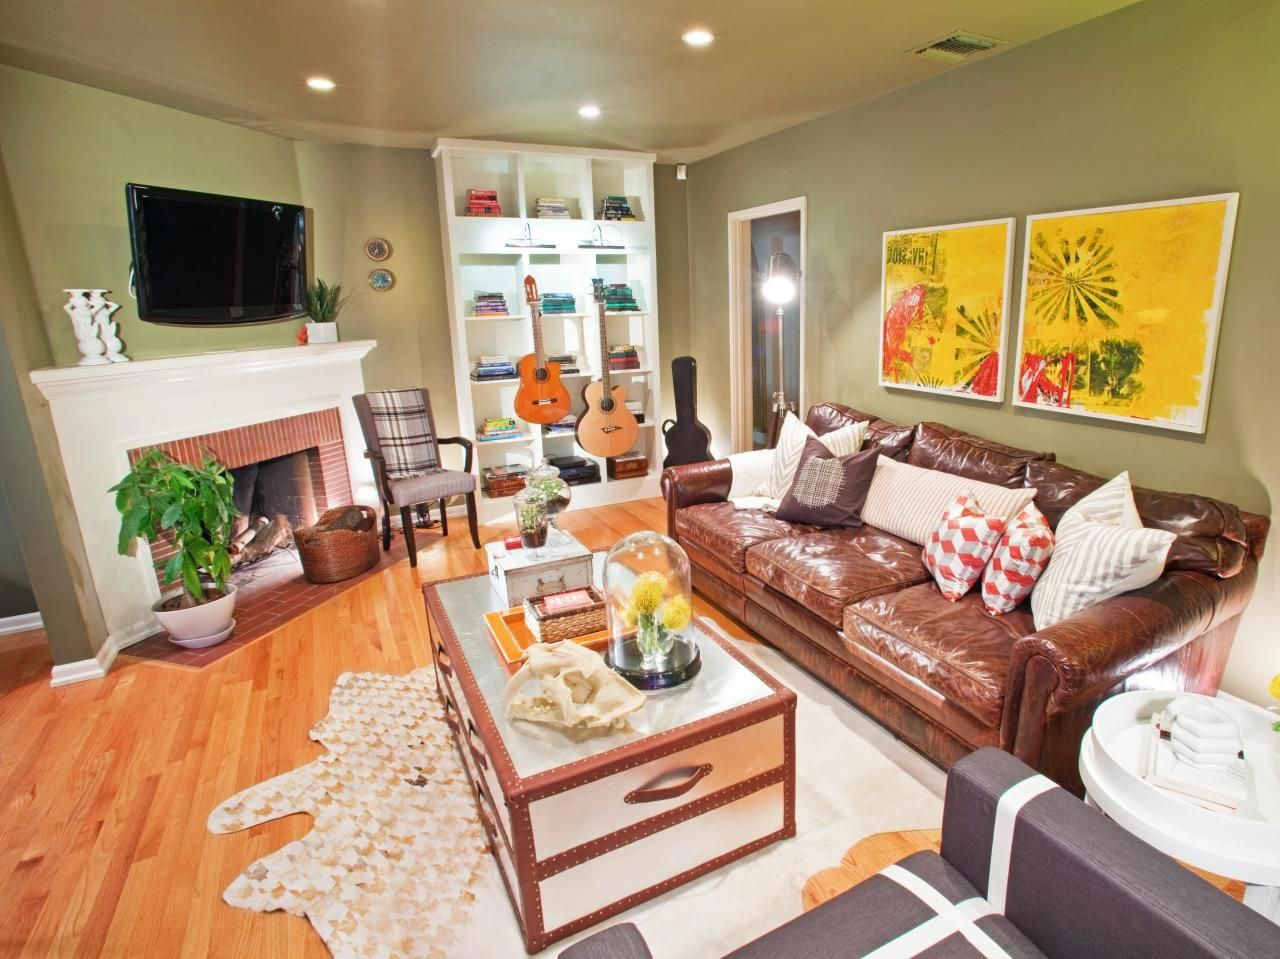 HGTV's Design on a Dime transformed this living room with ...